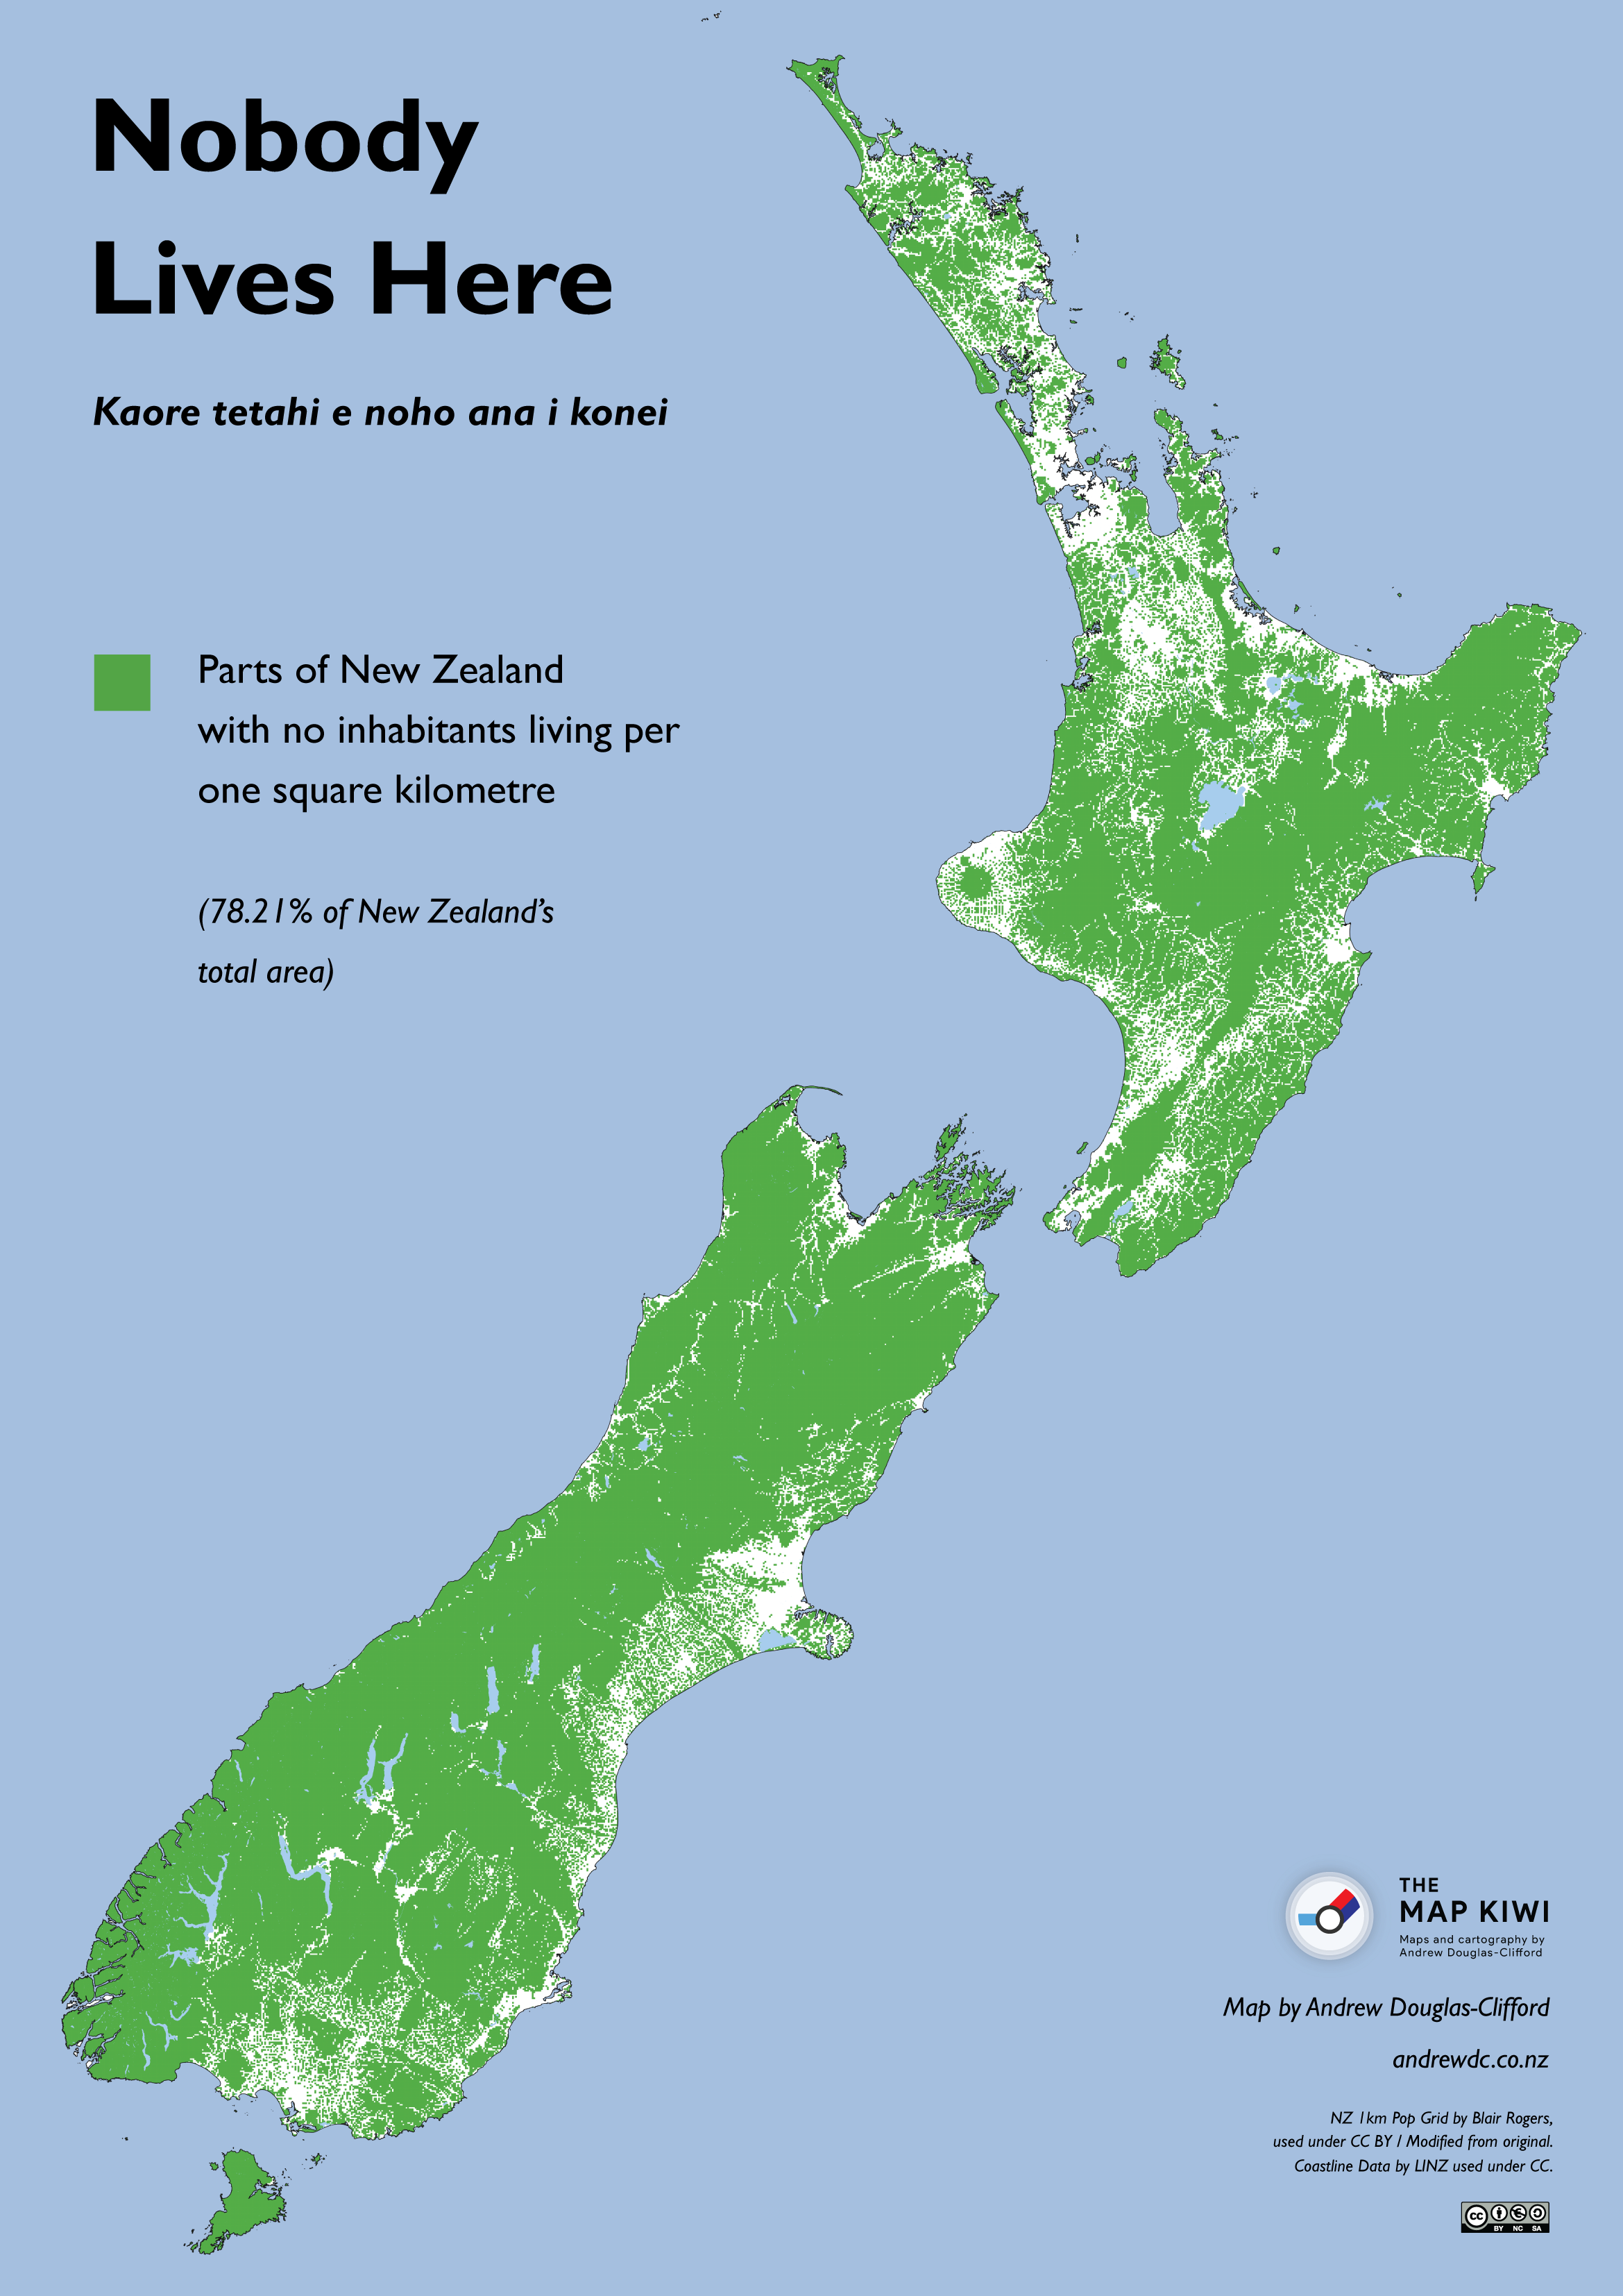 Download New Zealand Map.Nobody Lives Here Uninhabited Areas Of New Zealand The Map Kiwi